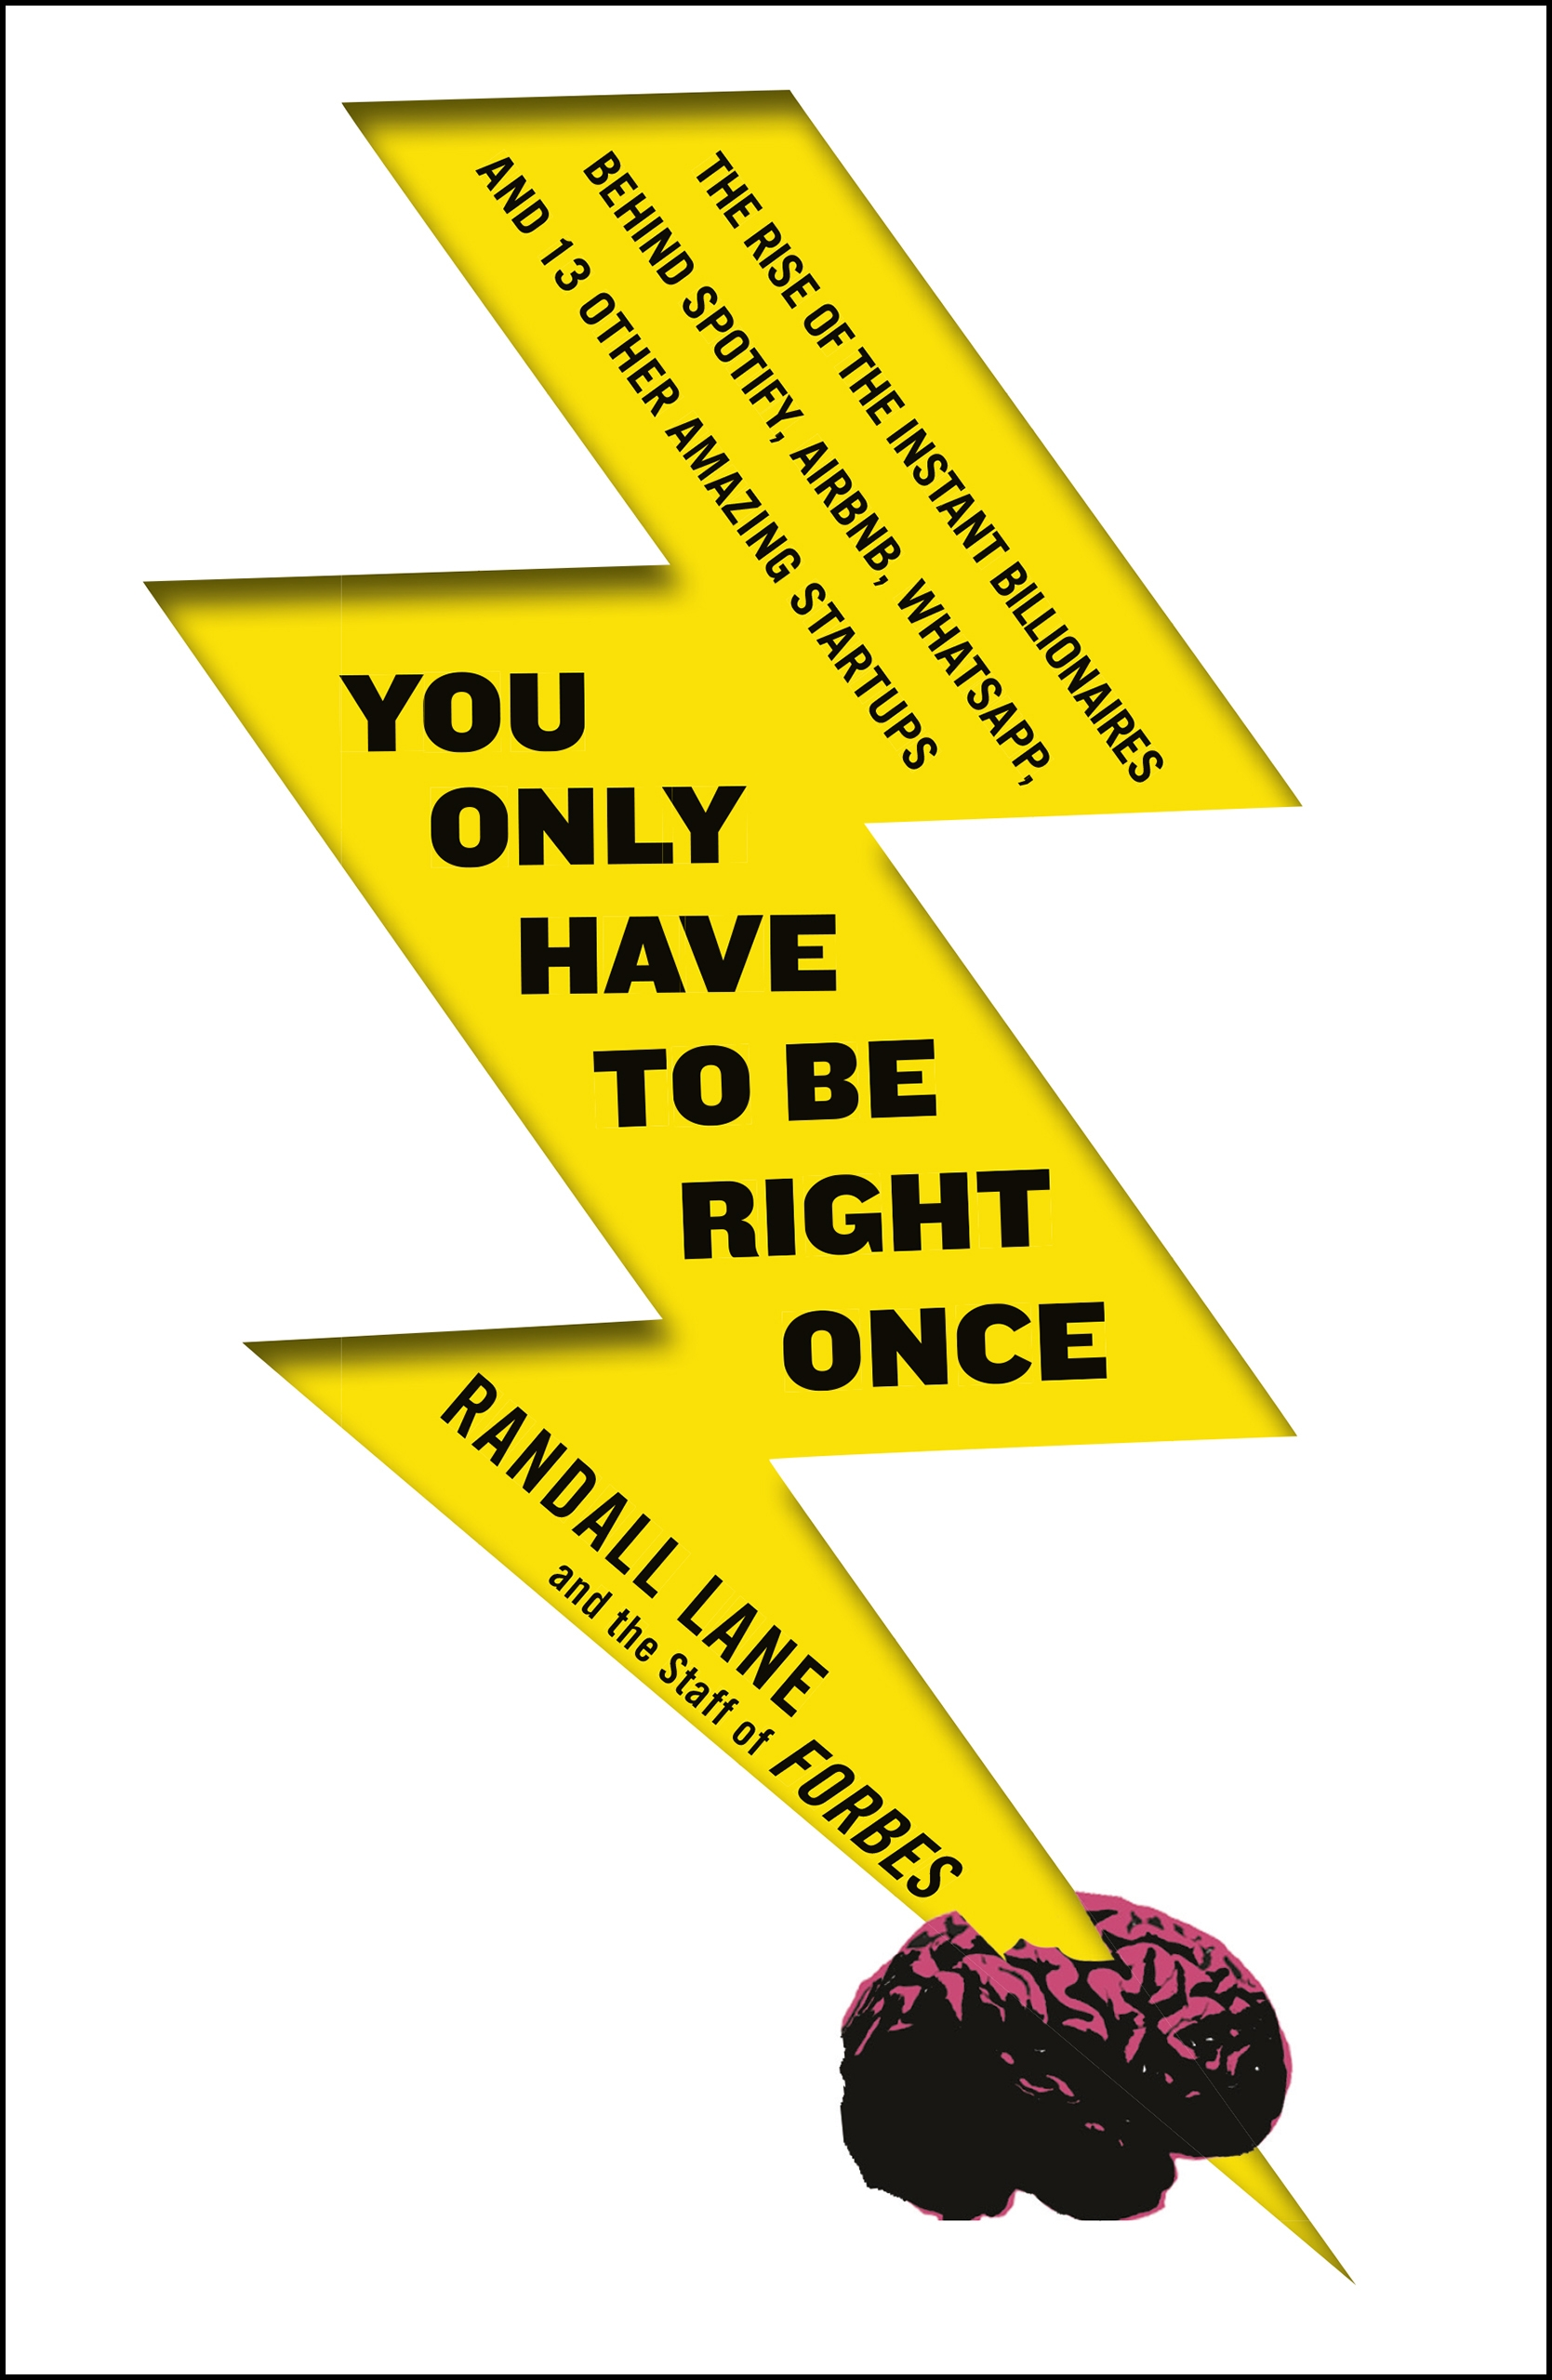 Download Ebook You Only Have To Be Right Once by Randall Lane Pdf